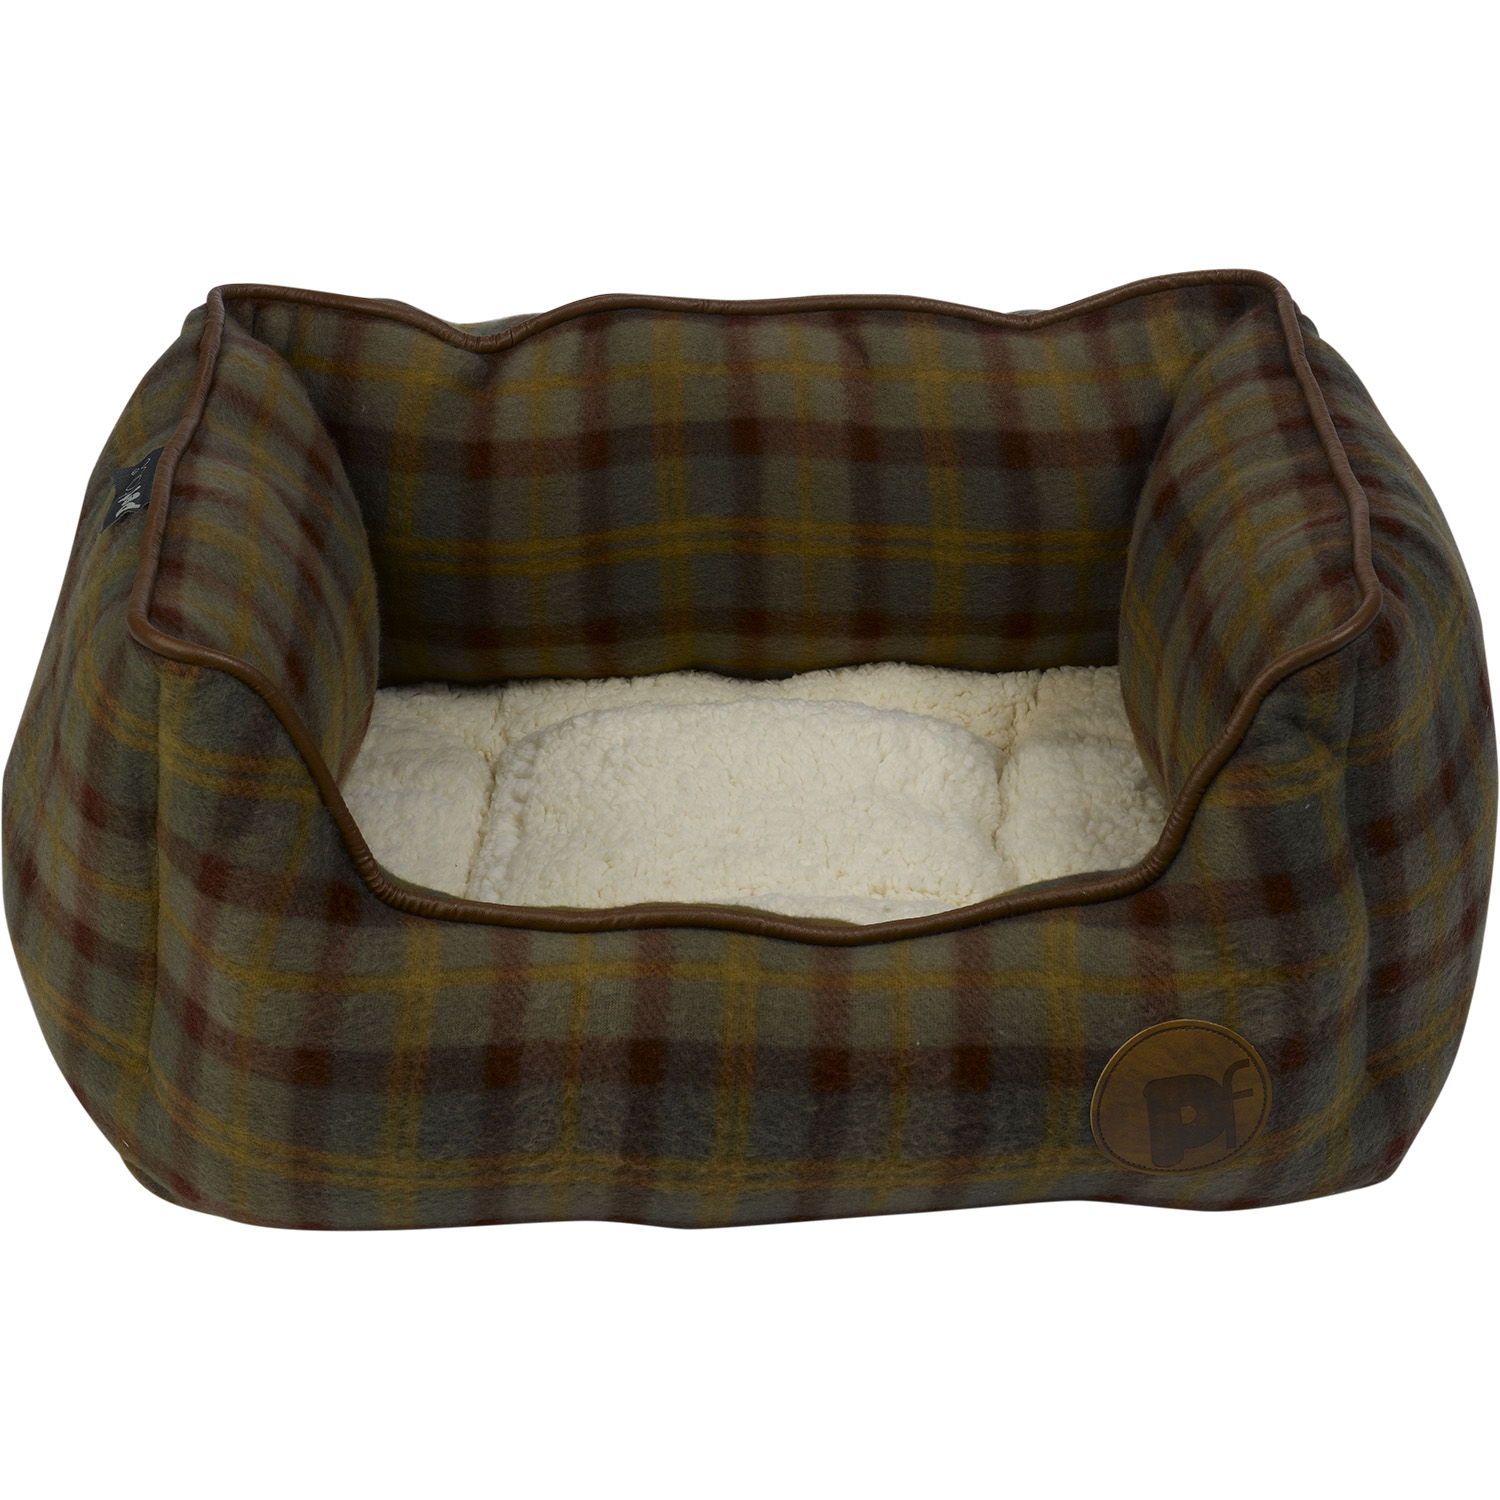 fleece dog bed pet face luxury country check puppy basket. Black Bedroom Furniture Sets. Home Design Ideas